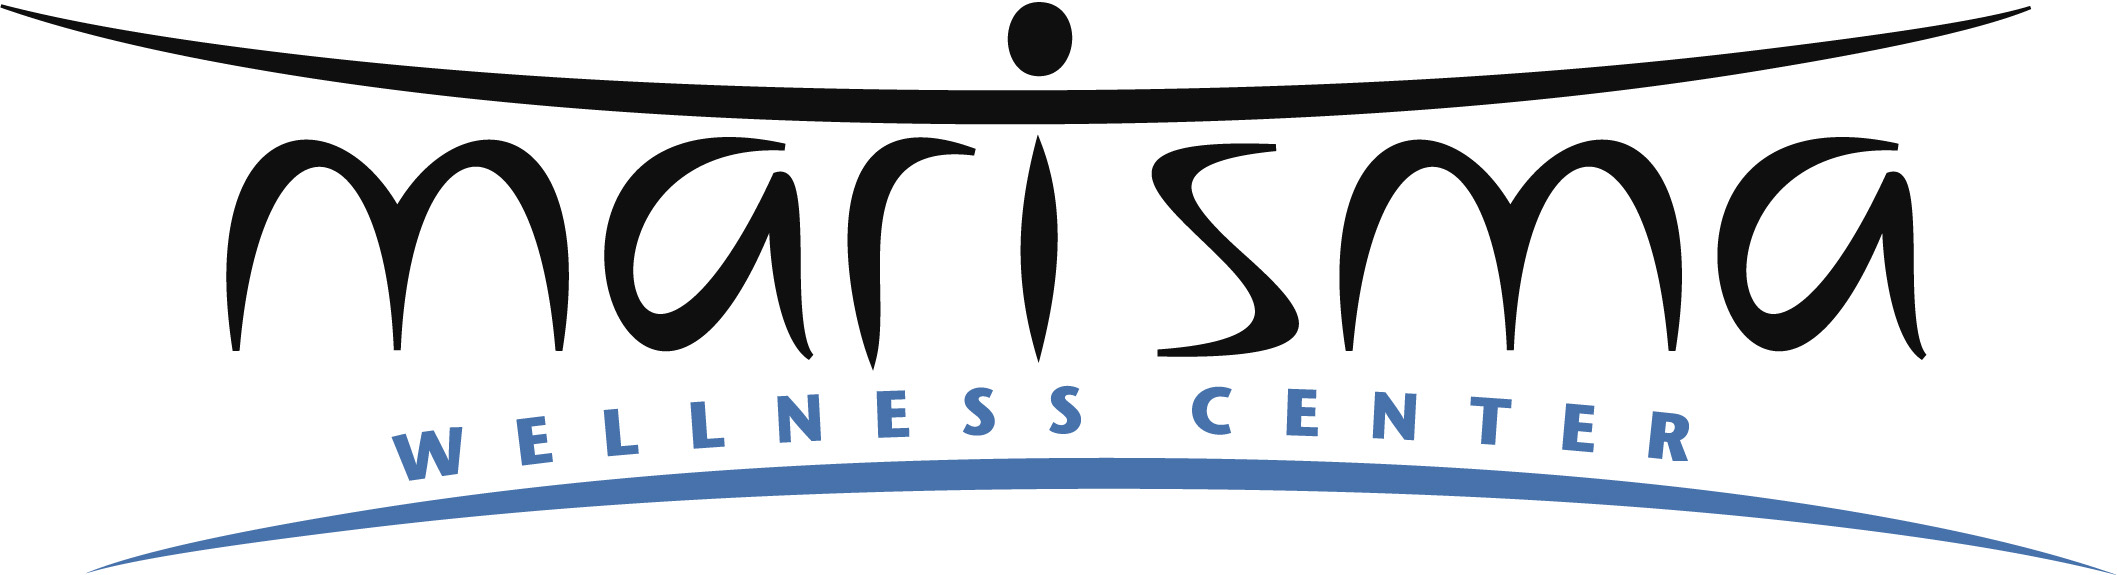 MARISMA WELLNESS CENTER logo